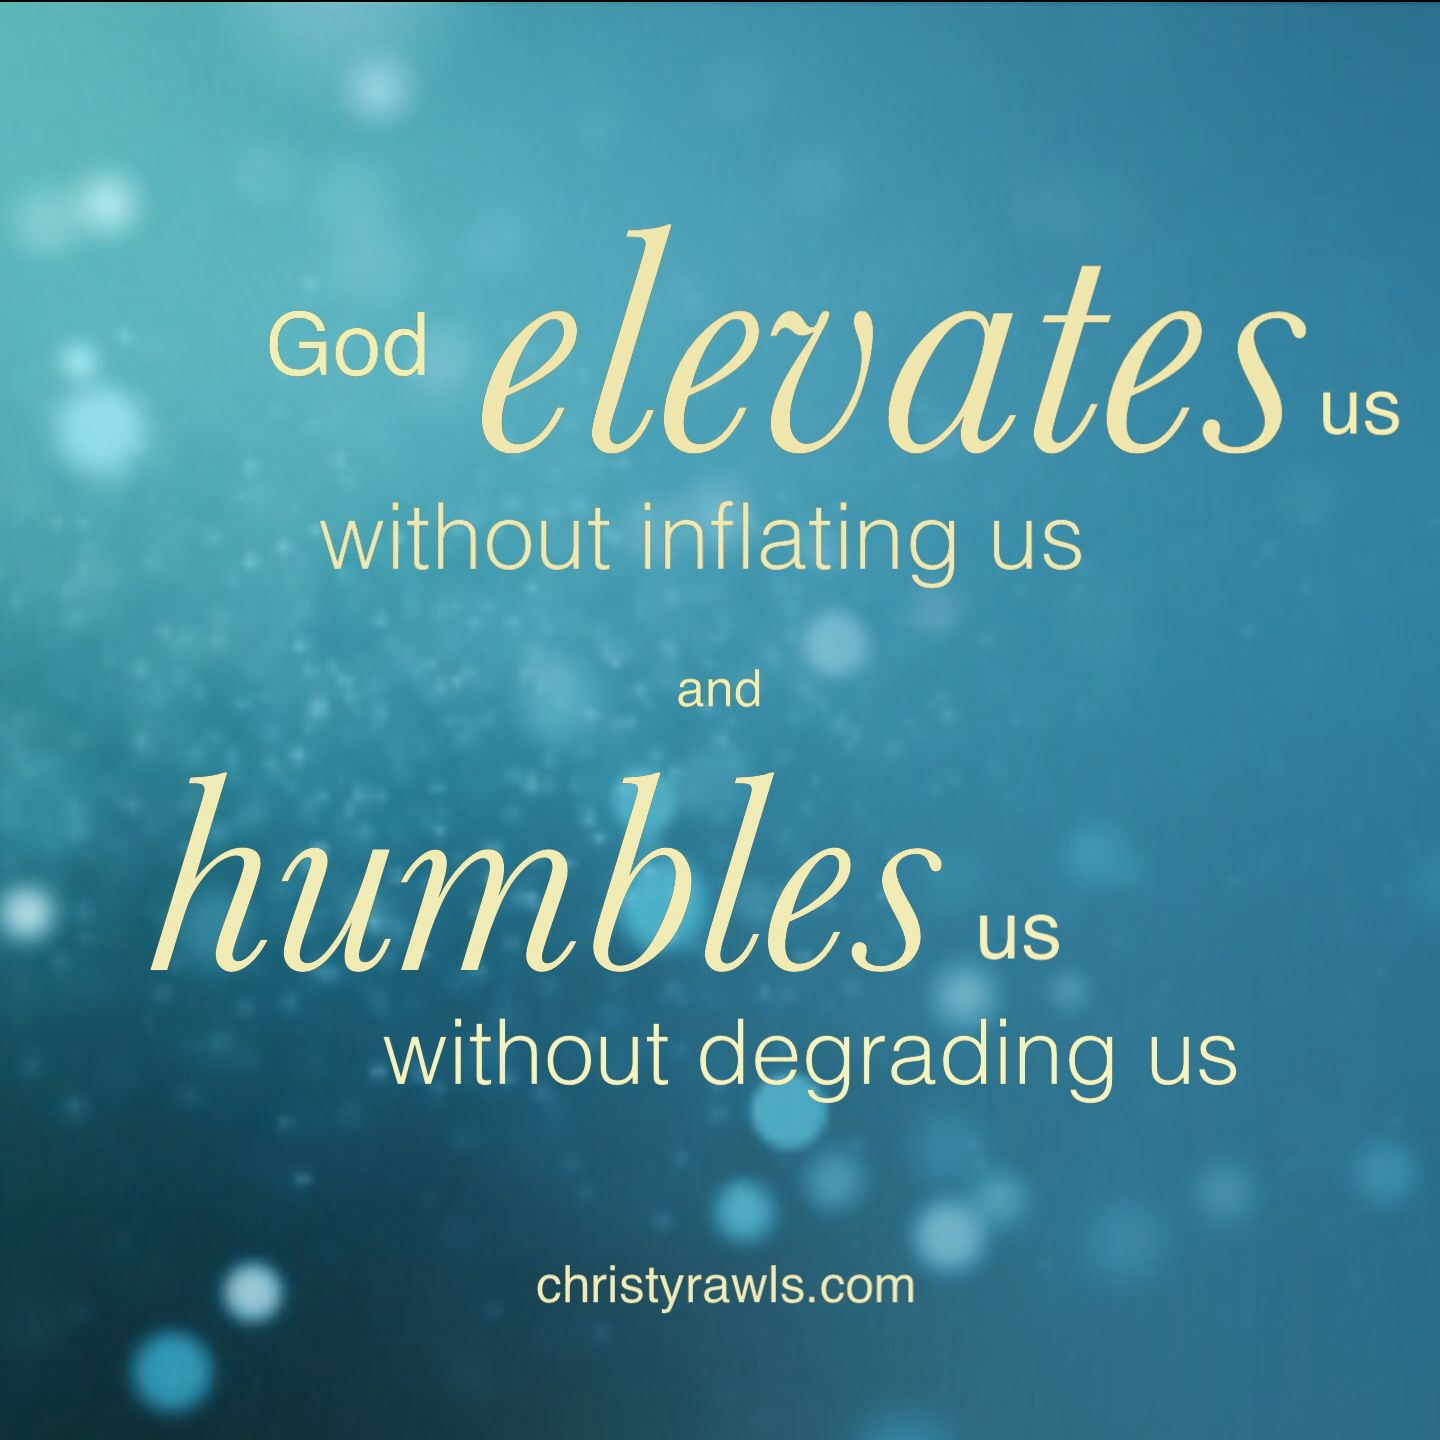 God elevates us without inflating us, and humbles us without